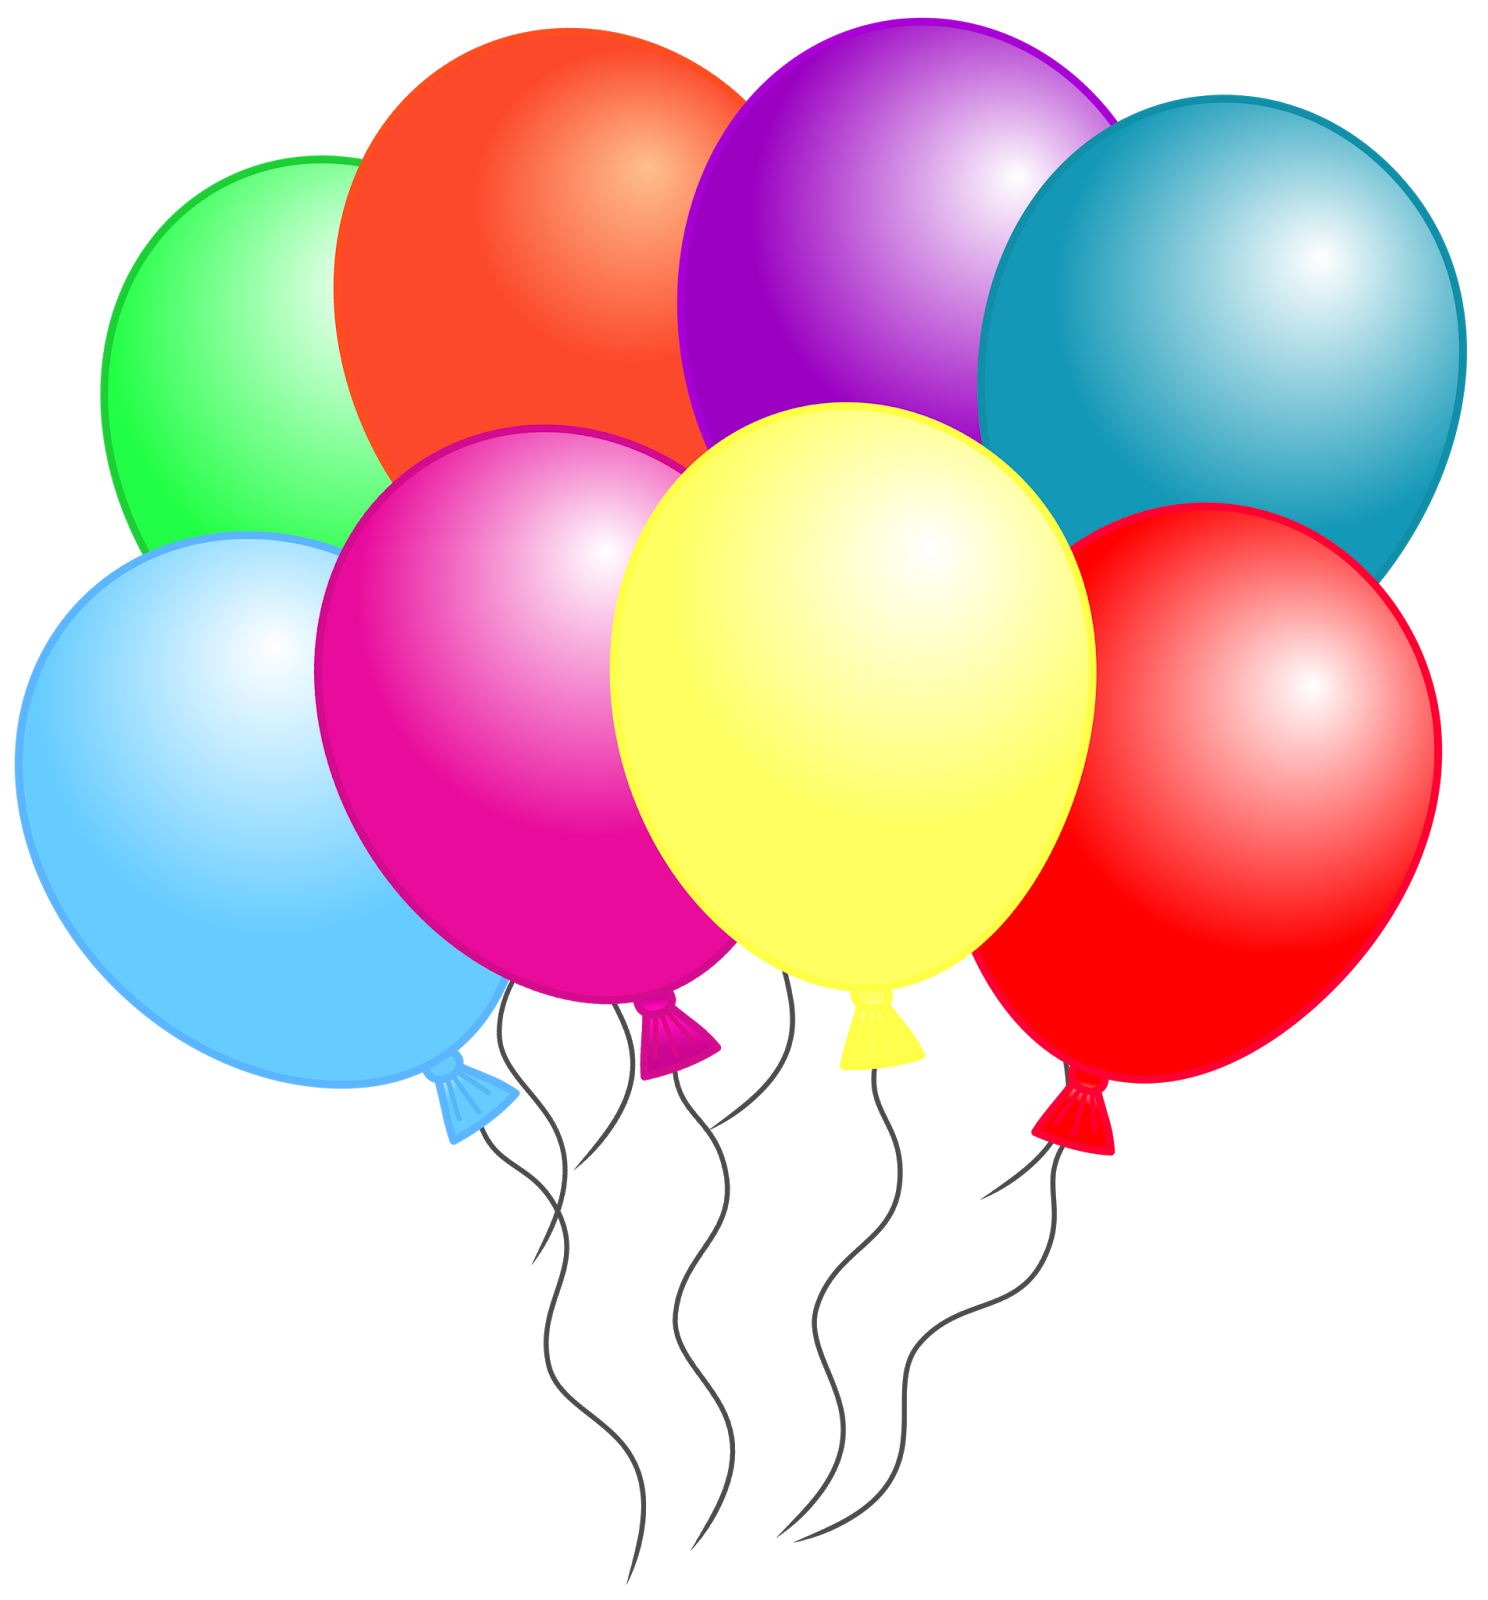 balloon clipart that can be downloaded individually and used alone rh pinterest com clipart of balloons black and white clipart of balloons party